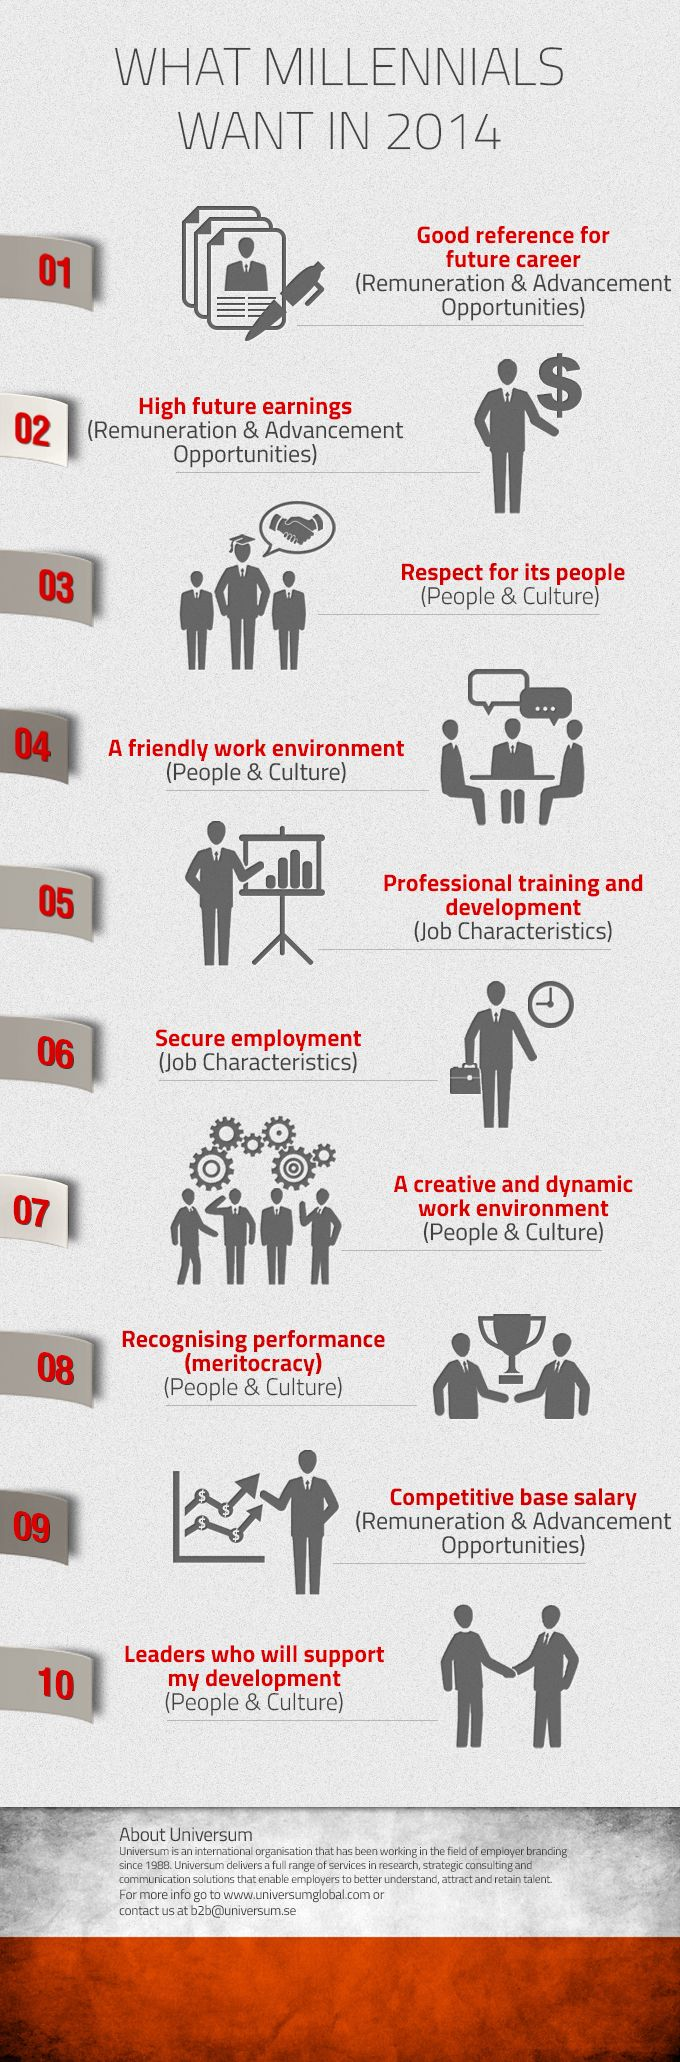 best images about work inspiration marketing s top 100 ideal employers what millennials want in 2014